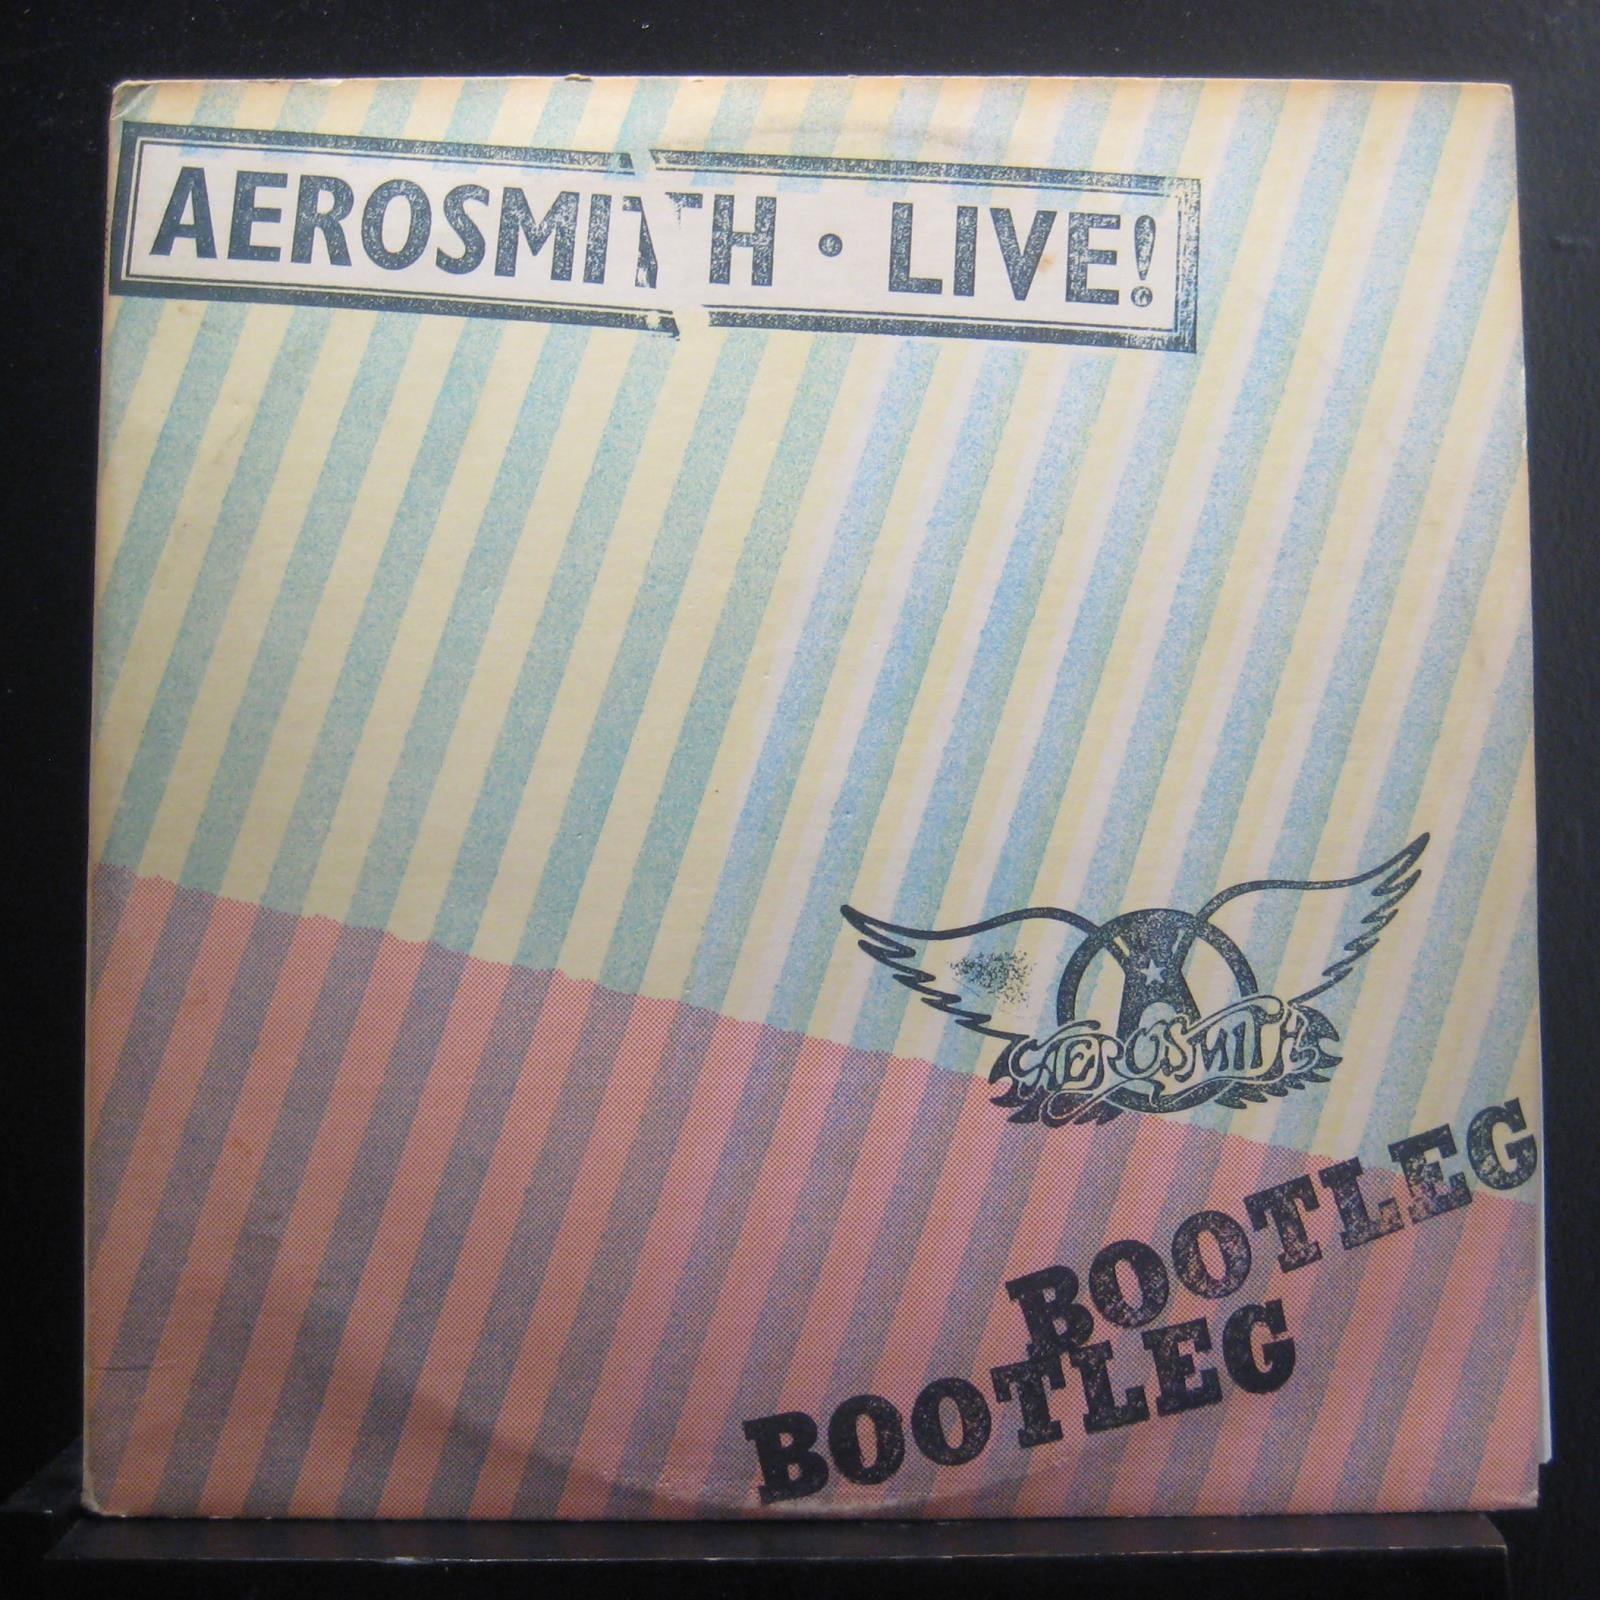 Aerosmith Live! Bootleg [1978] 2 LP Gatefold Album by Columbia